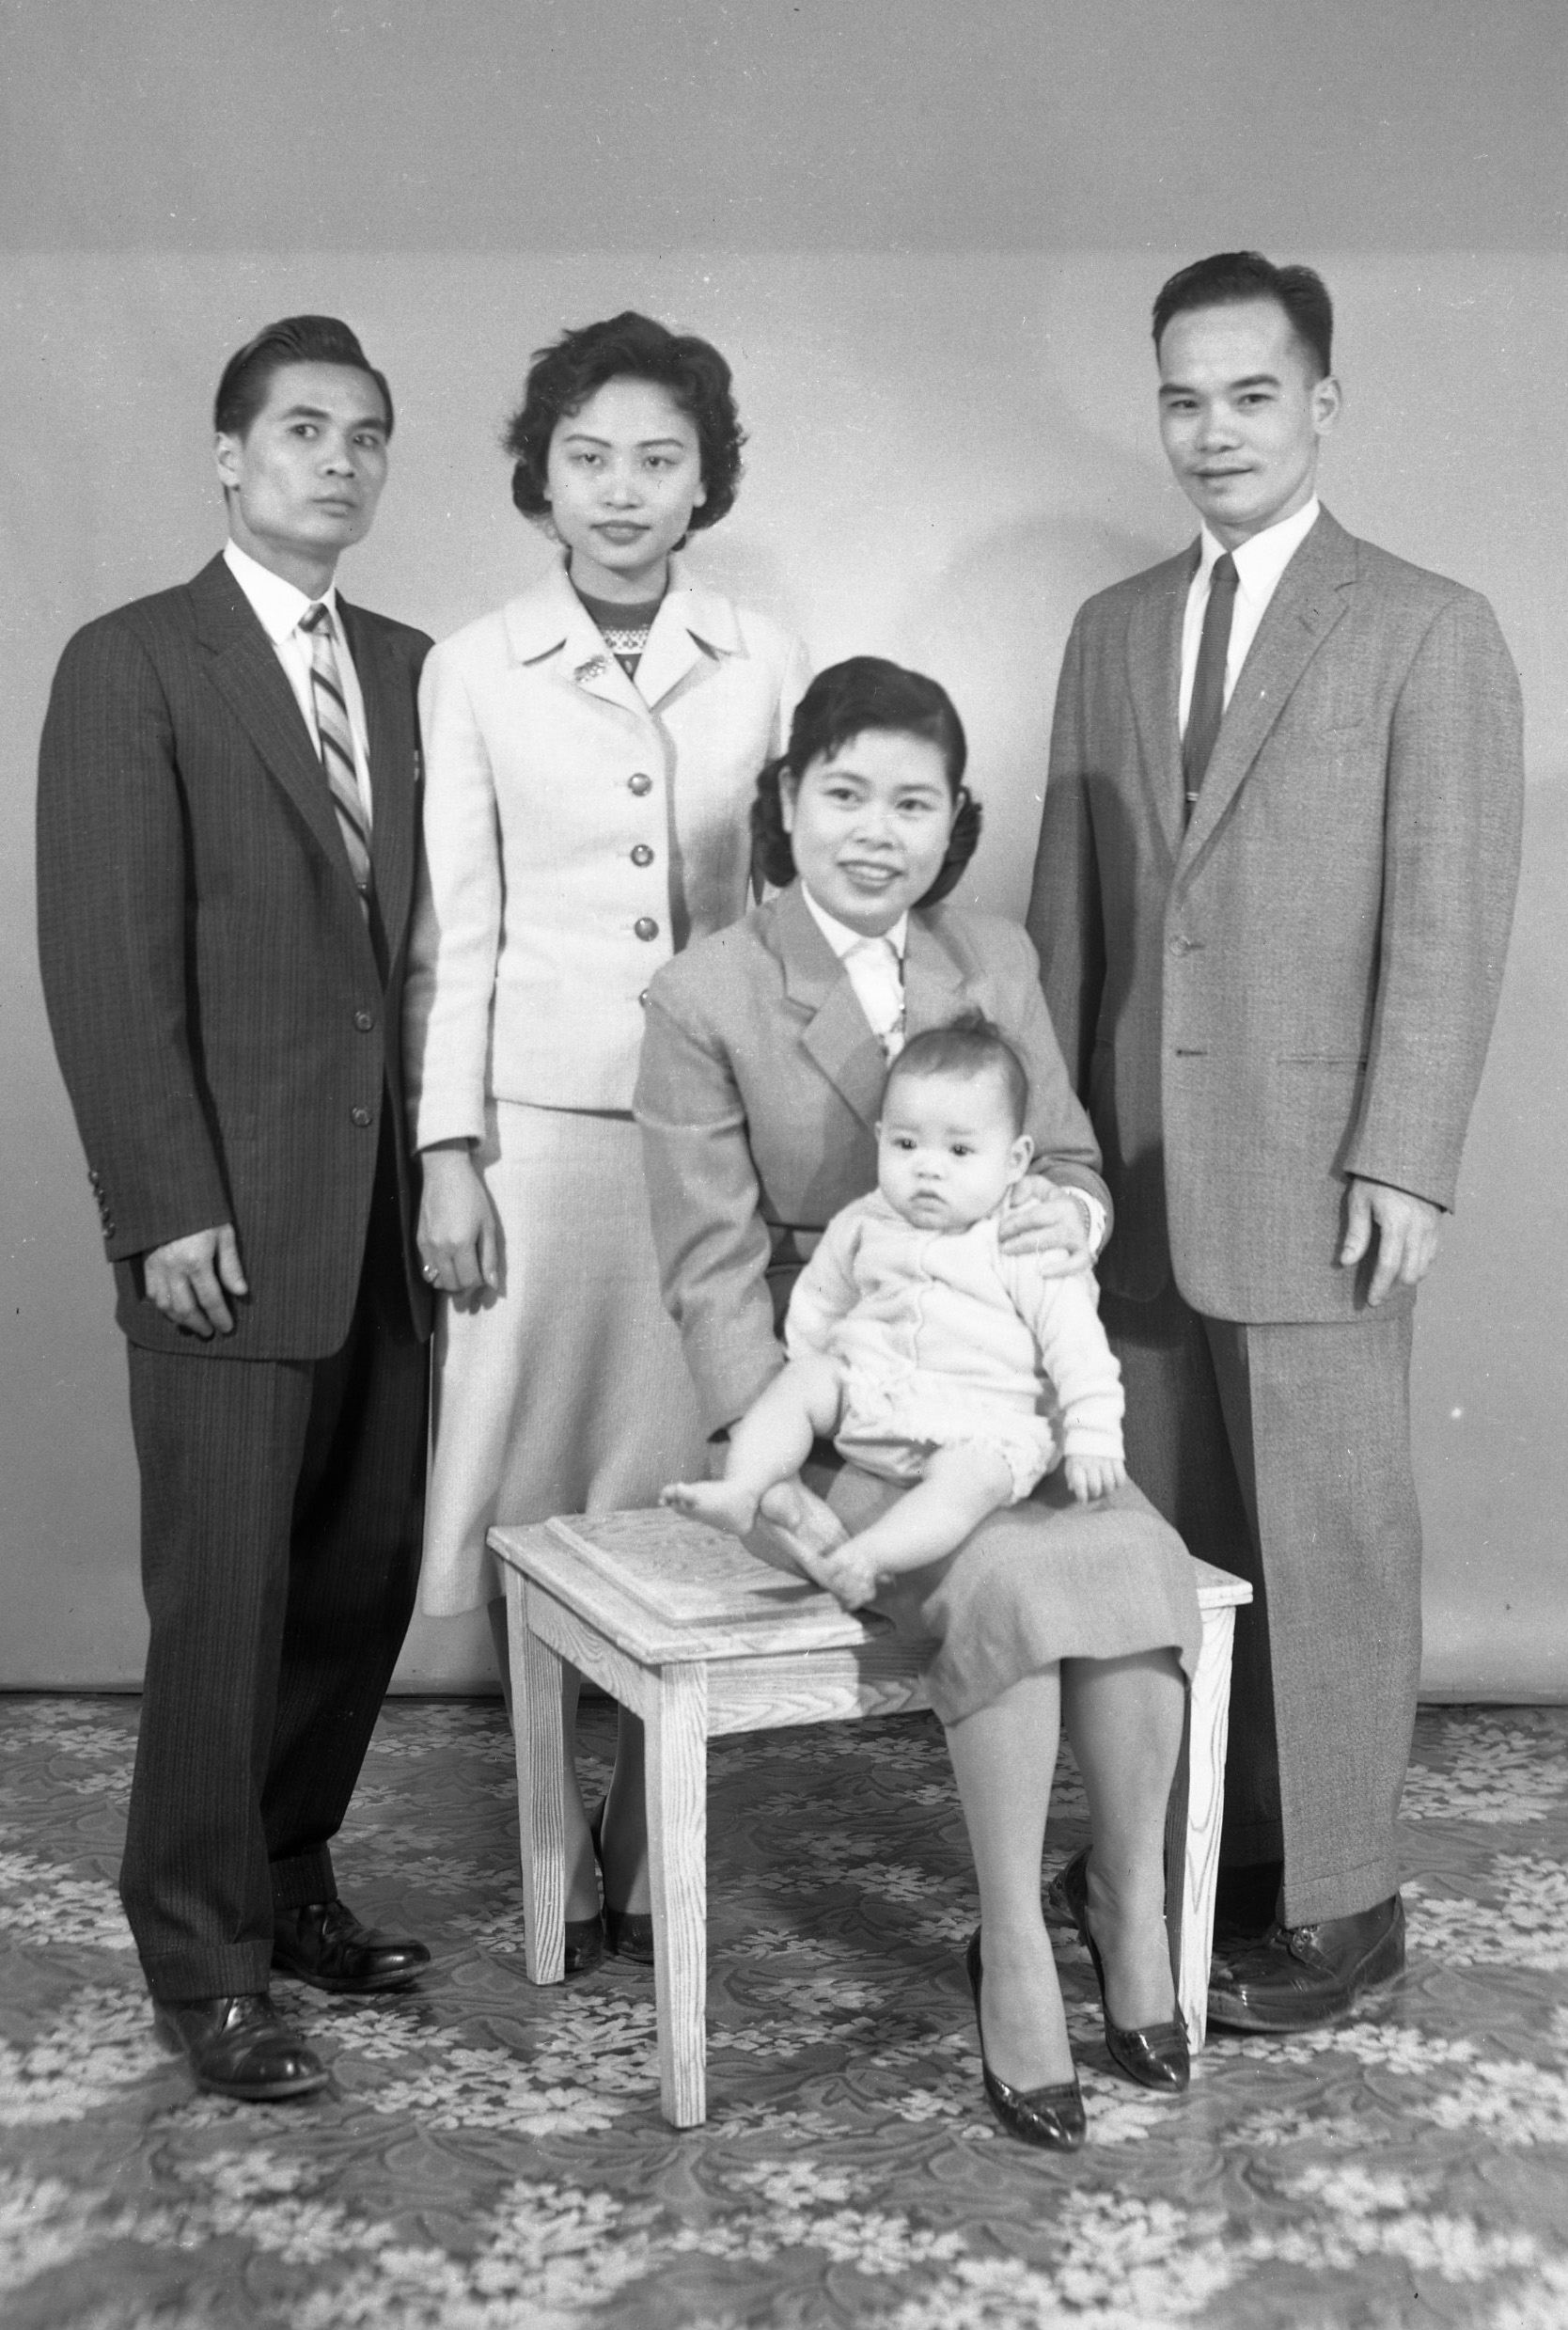 05S_P21,D859_Famille Thomy Poon_(2 avril 1959)_extrait